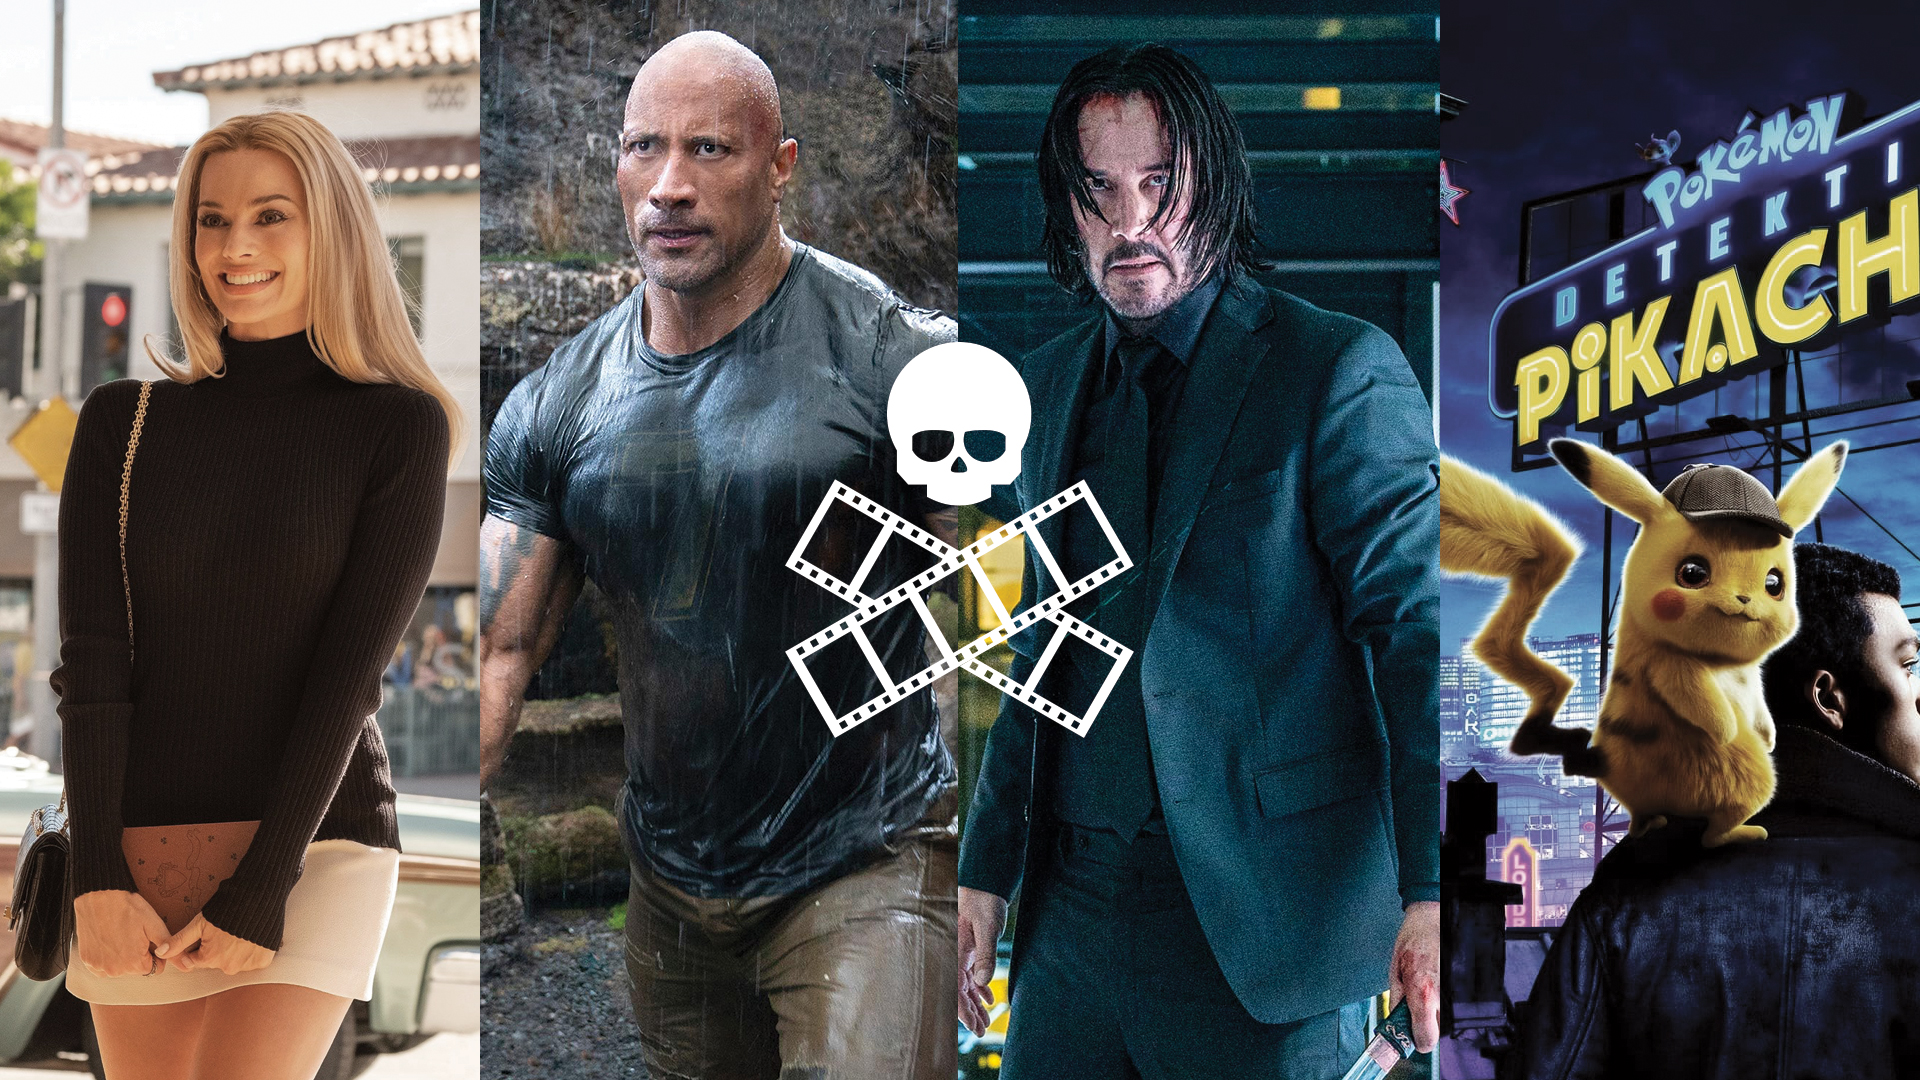 151. Summer Box Office Results 2019